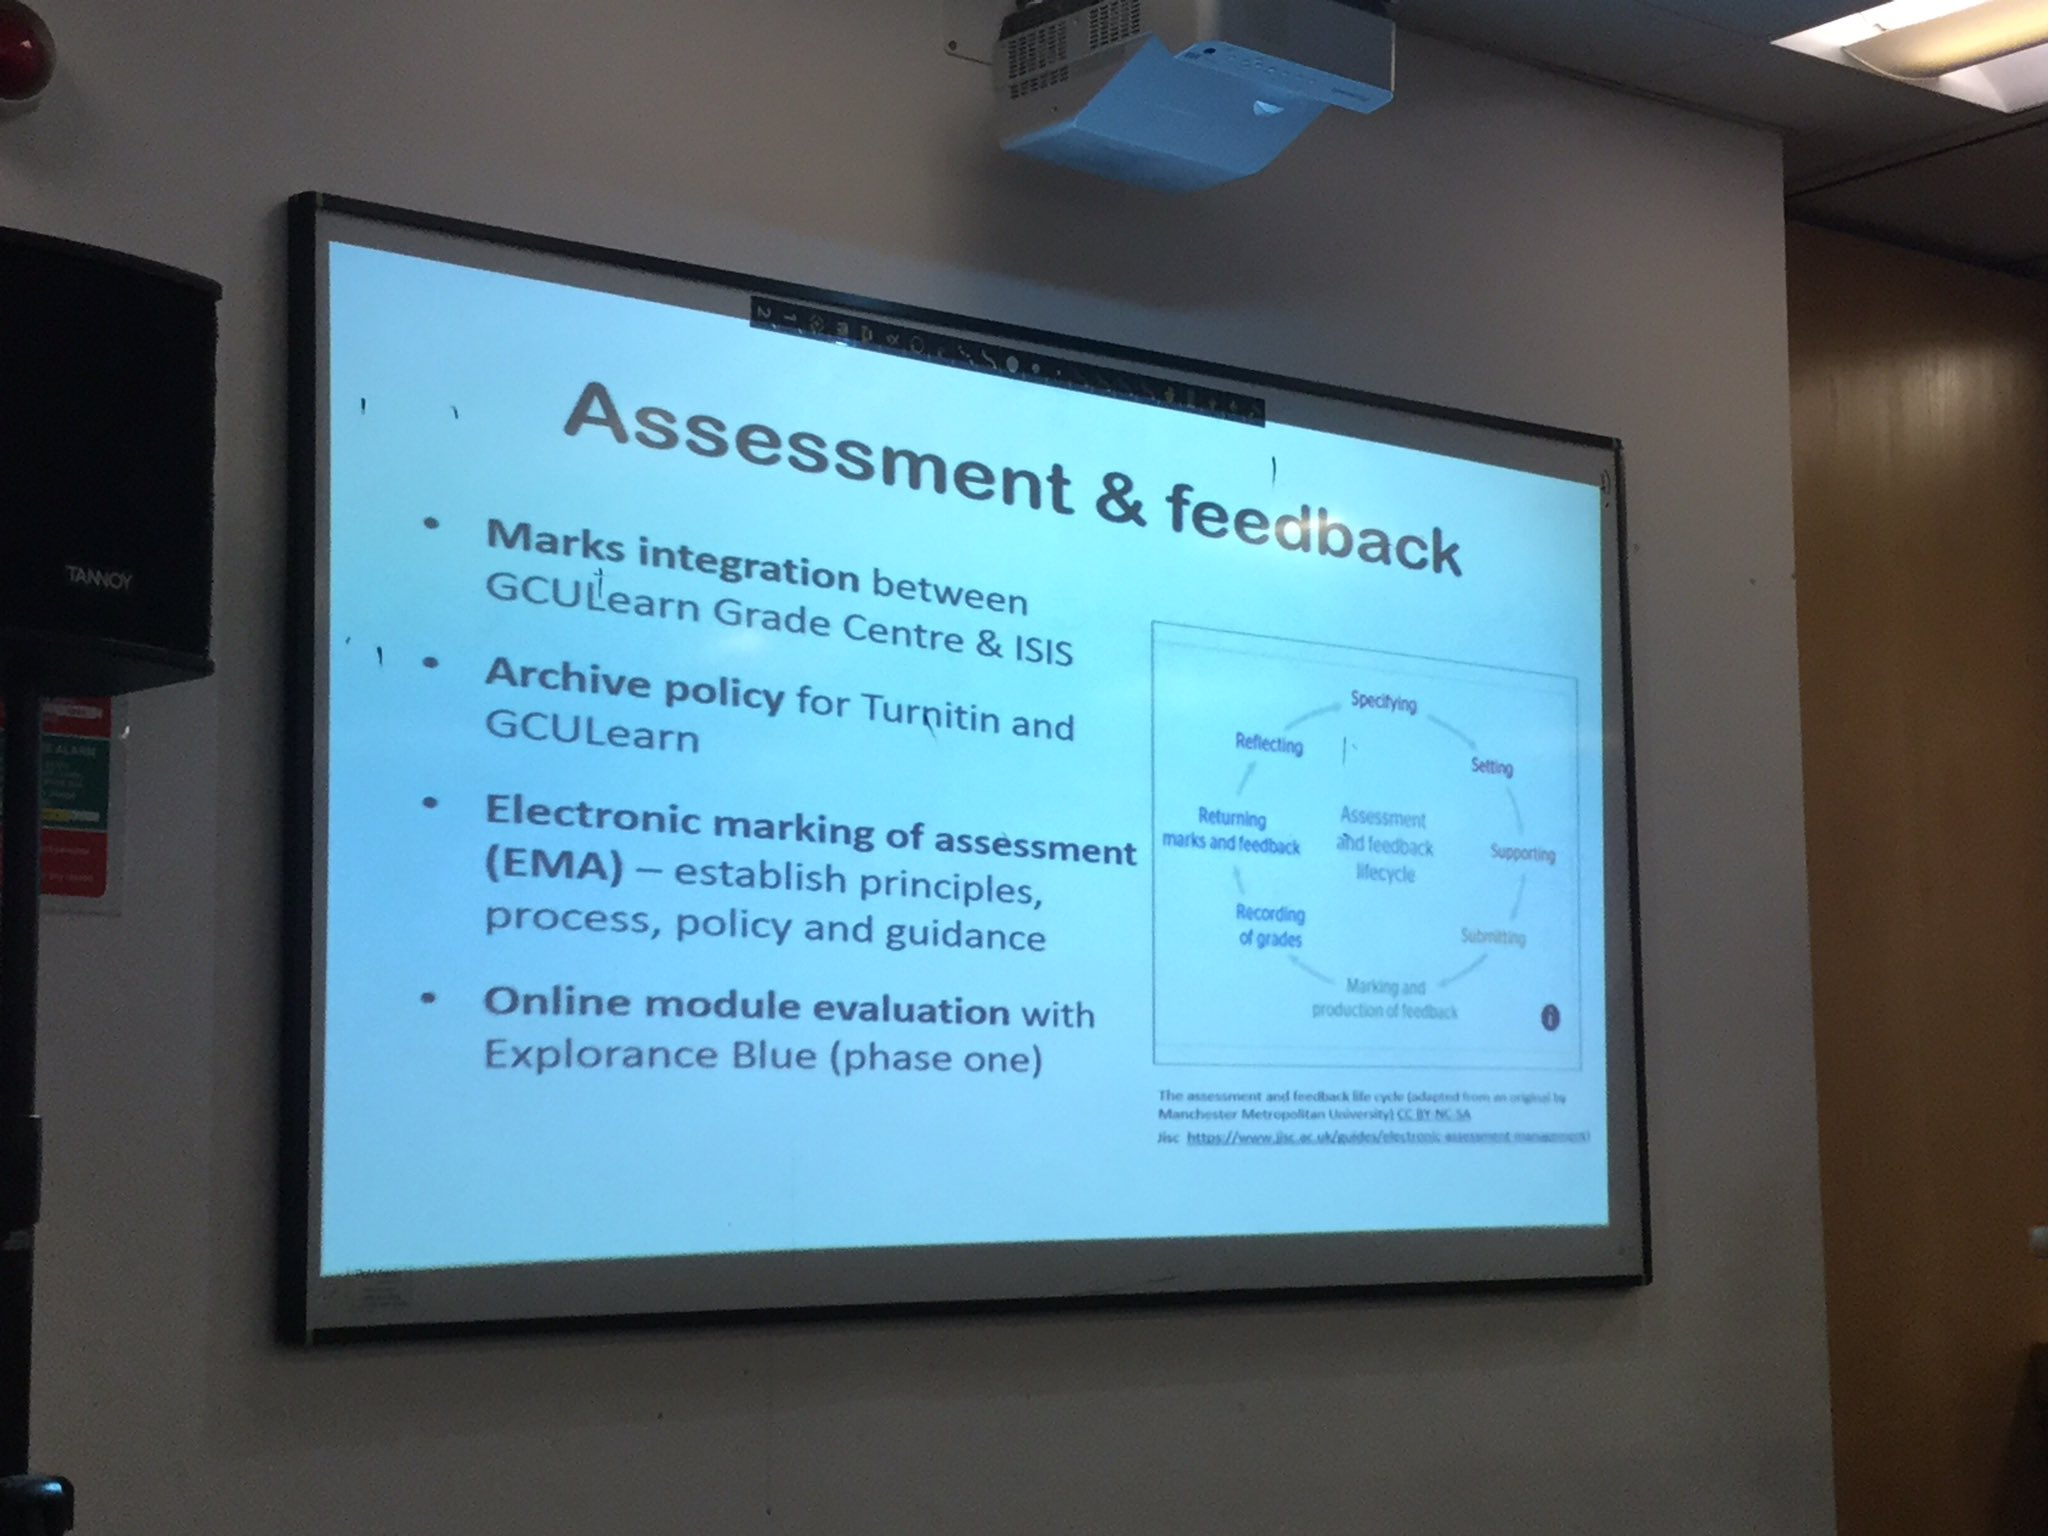 some of the ongoing work around assessment and feedback #LTGCU https://t.co/epnZUXUW6I